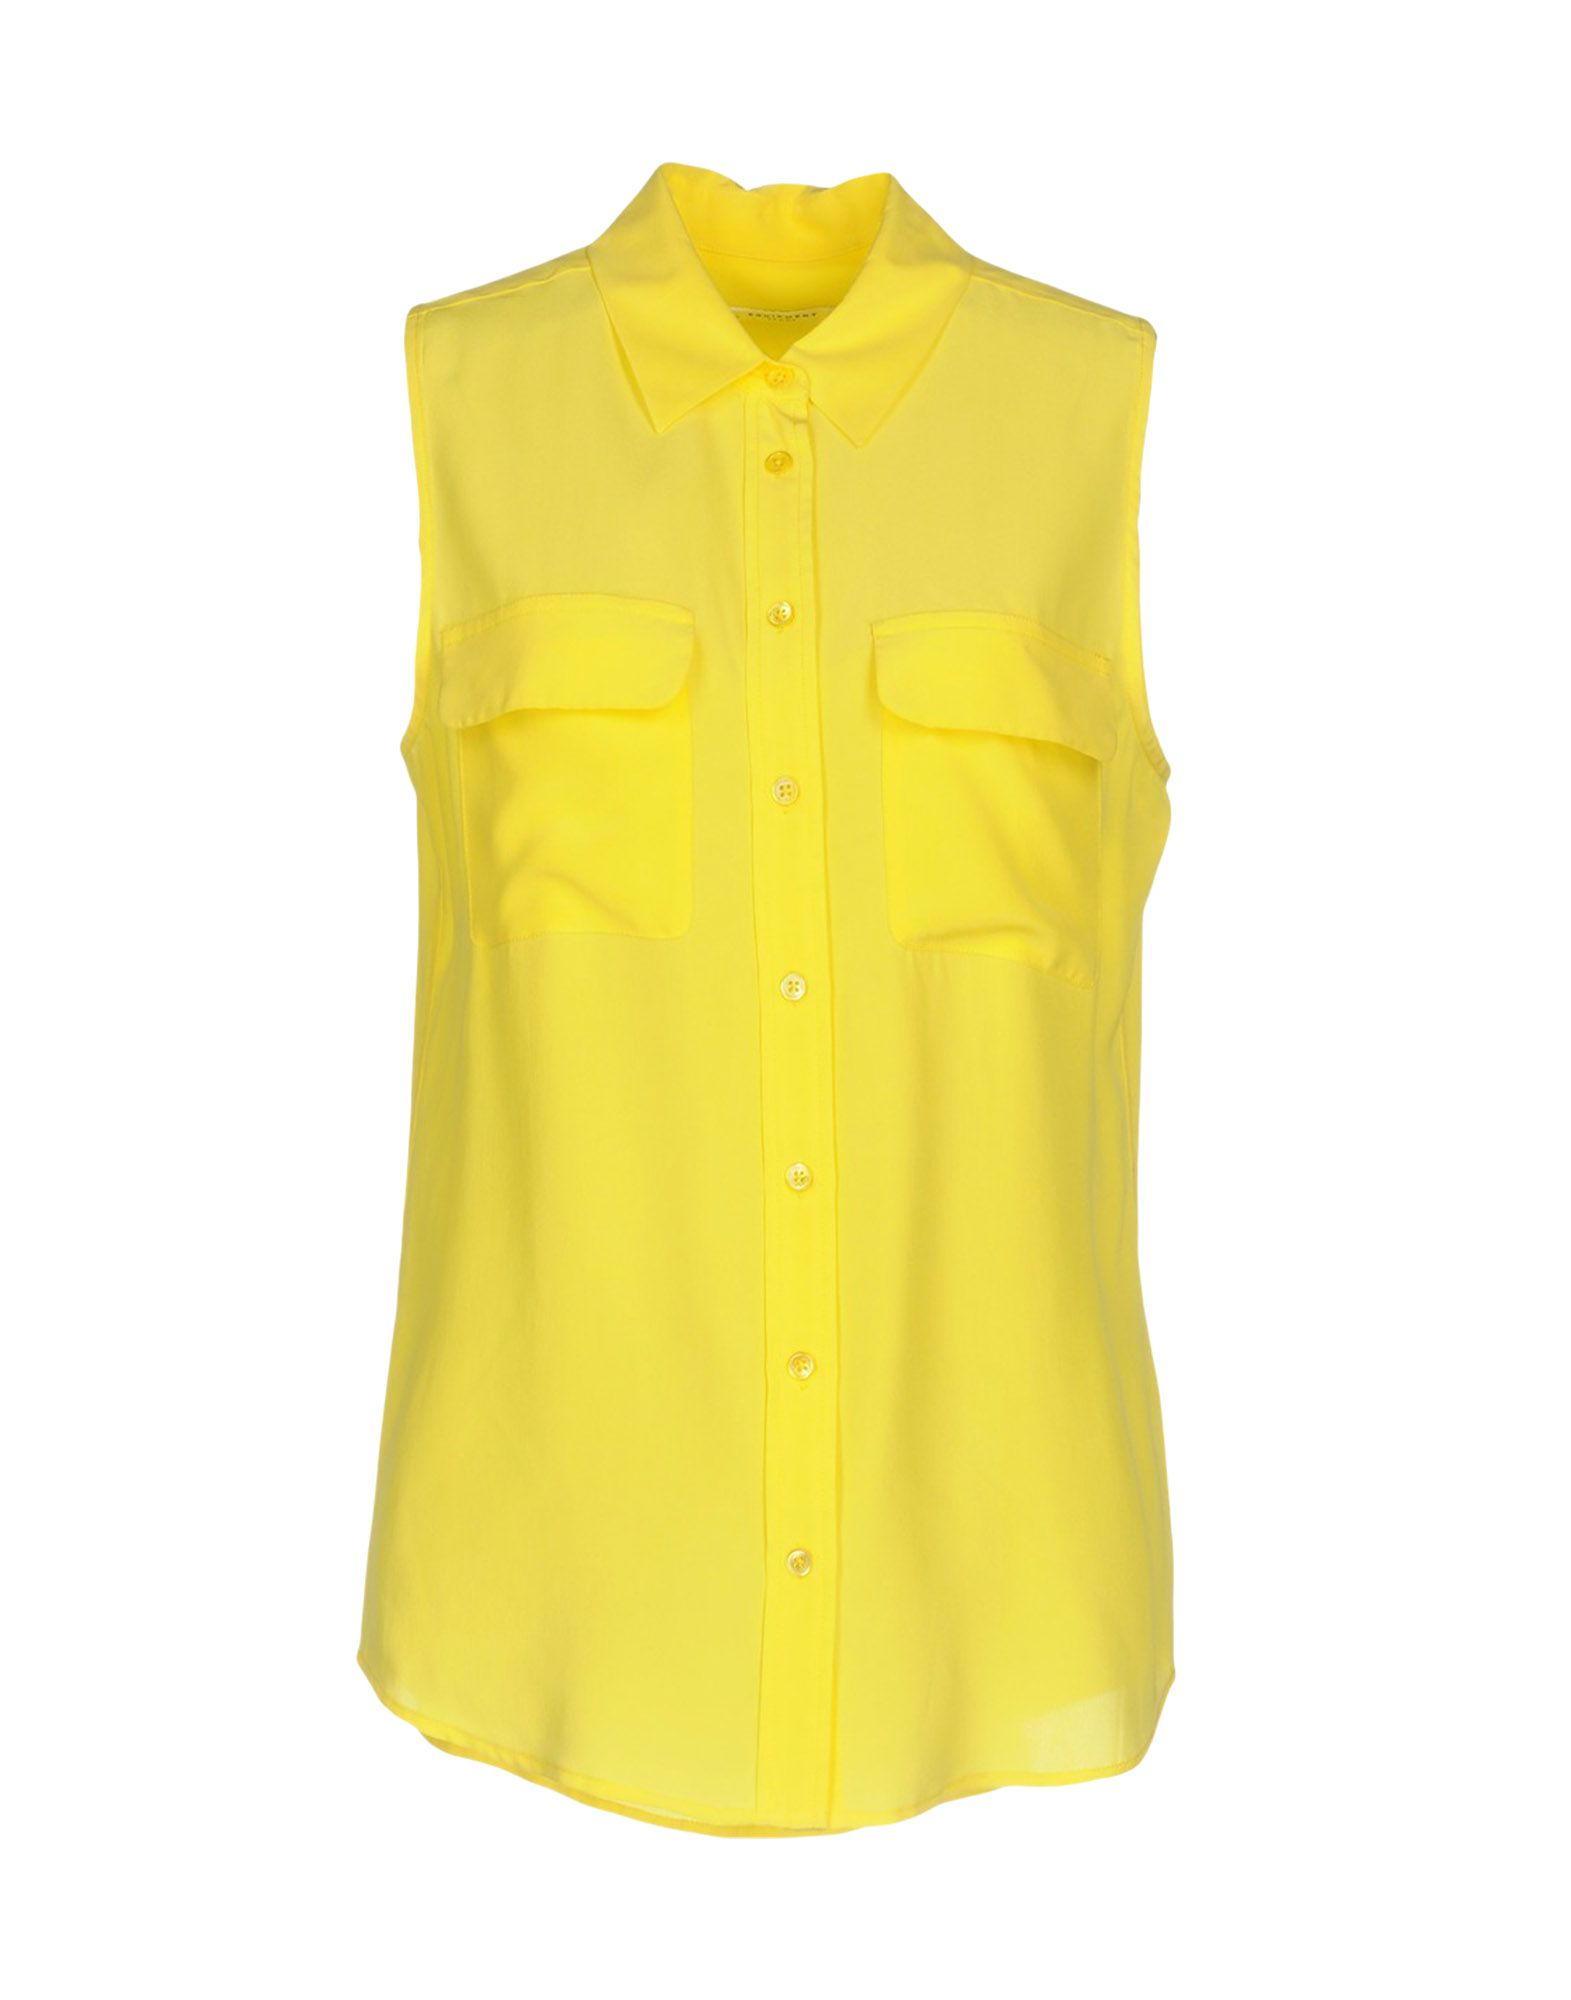 amp; Silk Yellow In Shirts Equipment ModeSens Femme Blouses 4Rq788Pn